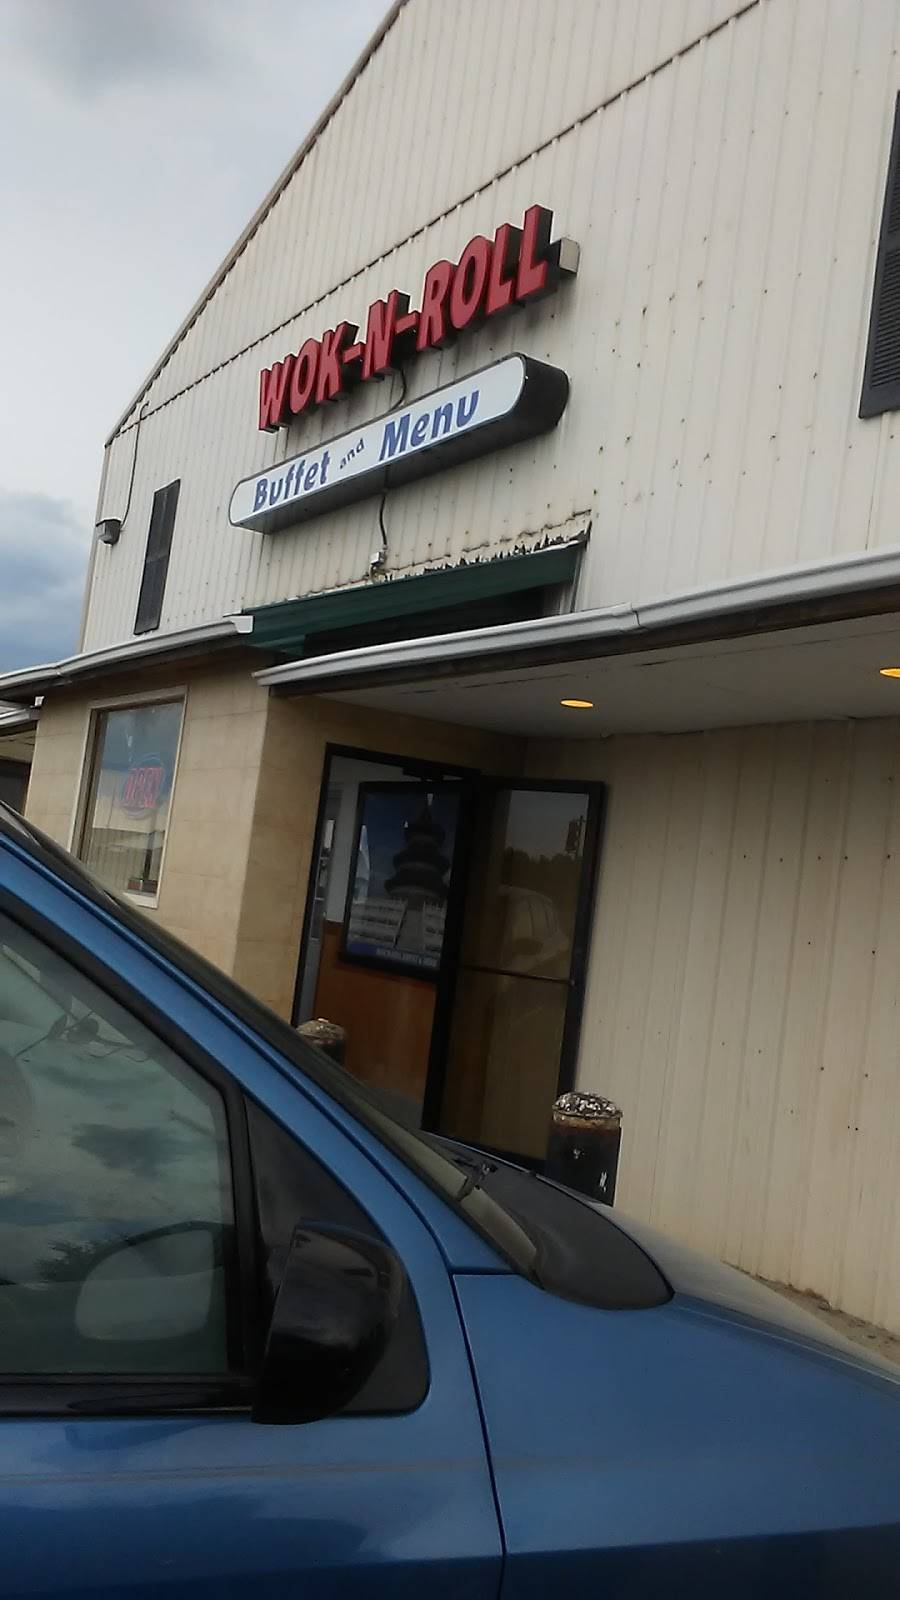 Wok & Roll   restaurant   803 S Commercial St, Harrisburg, IL 62946, USA   6182536888 OR +1 618-253-6888